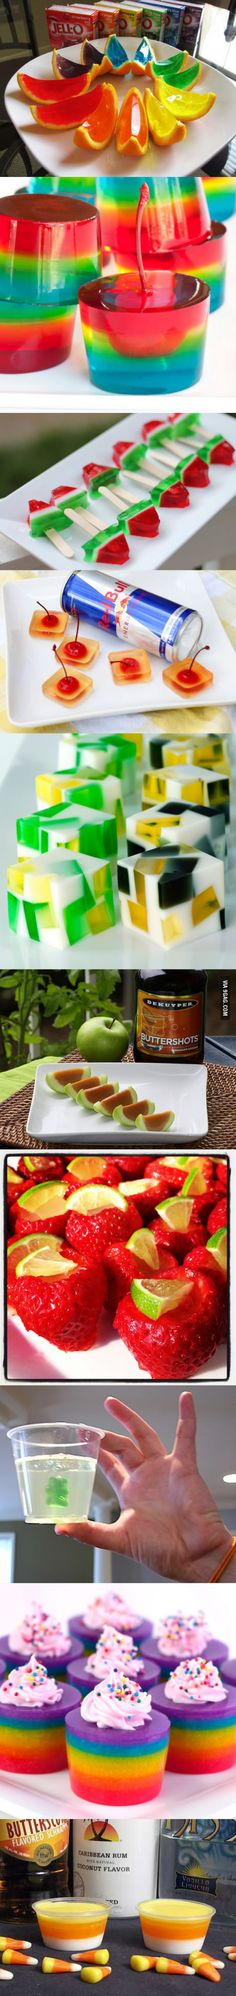 10 different ways to do jello shots, this is amazing.                                                                                                                                                      Más